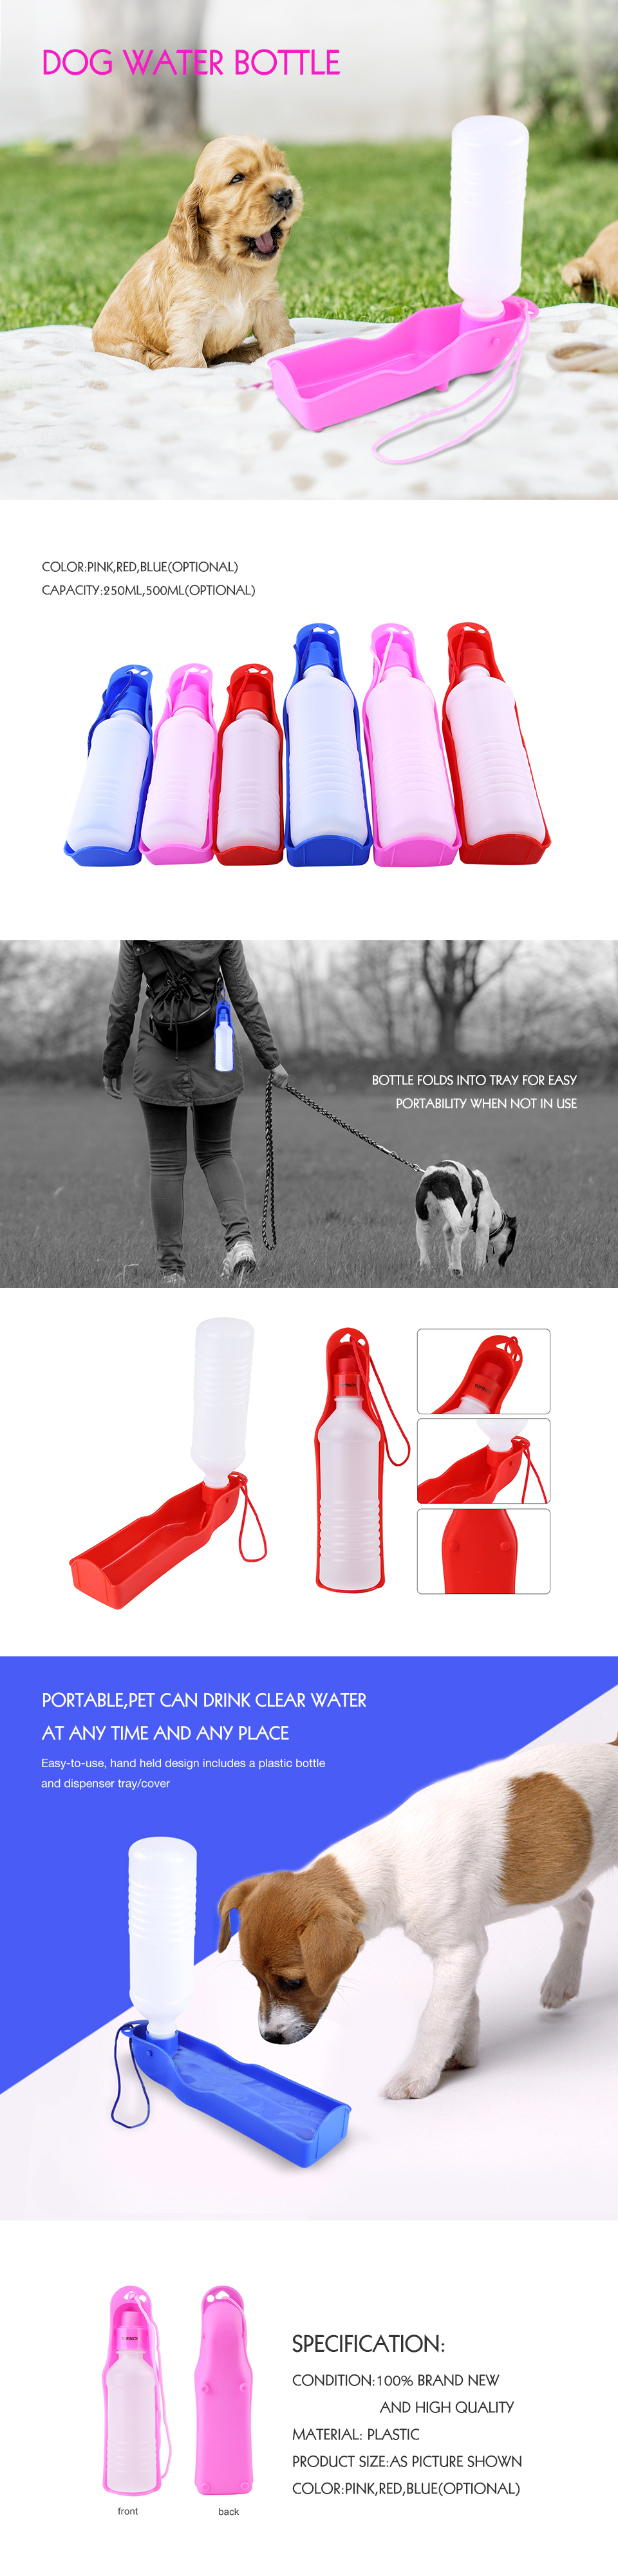 250/500ml Portable Dog Water Bottle Feeder With Plastic Bowl